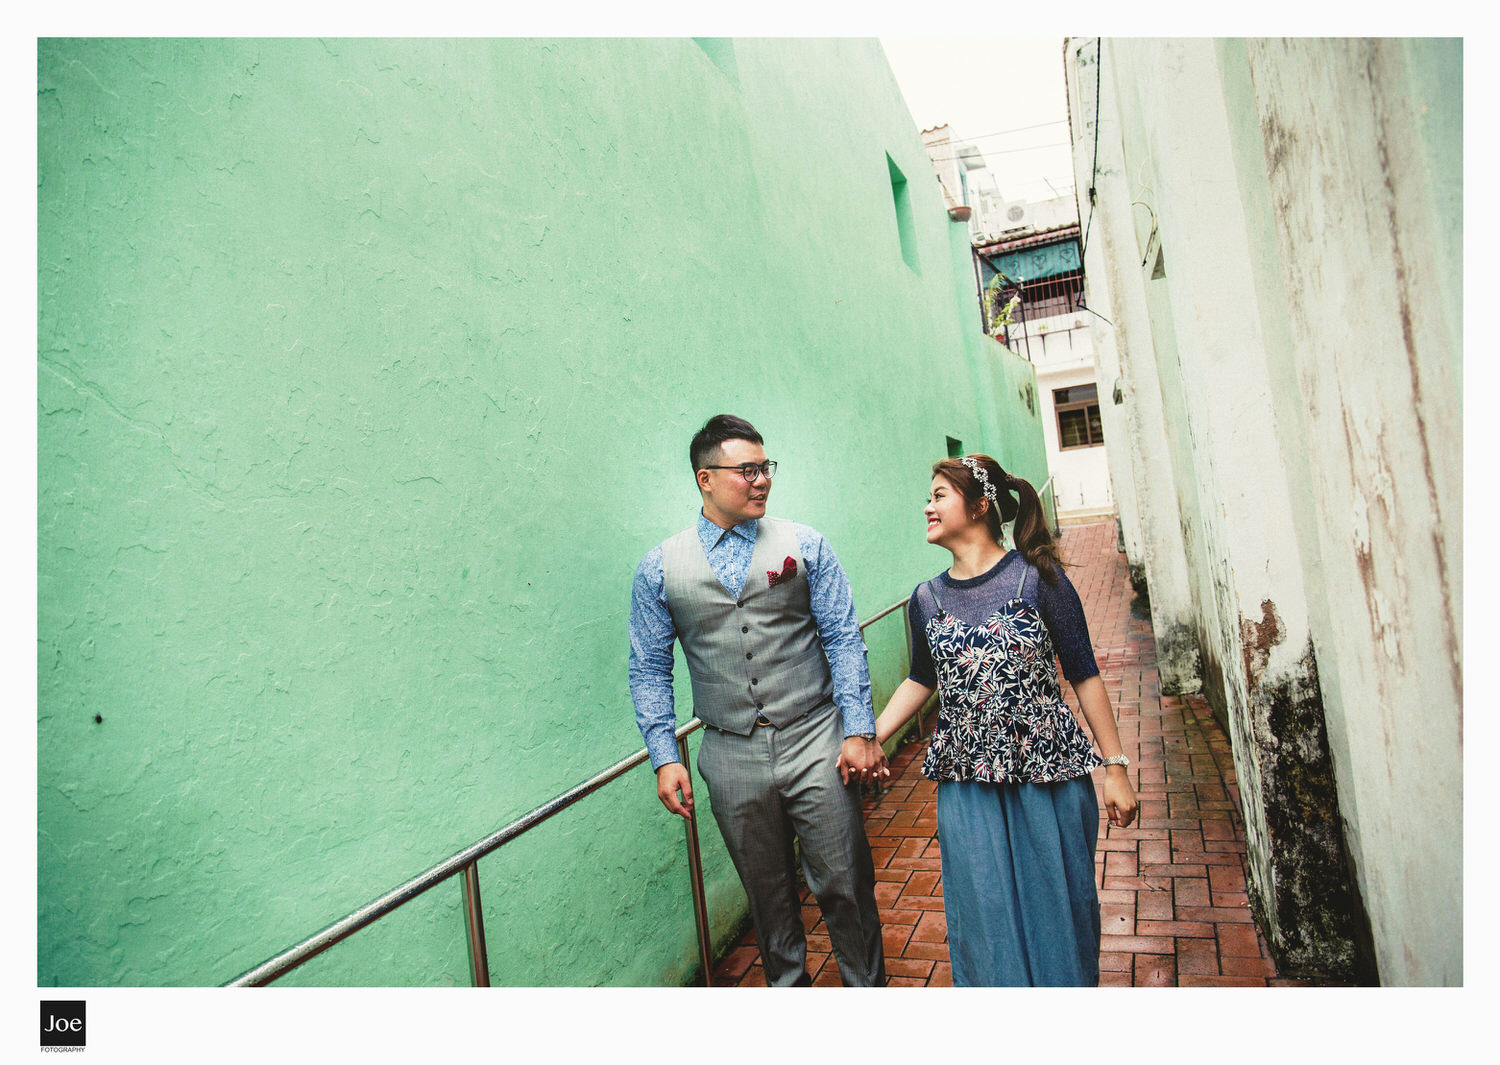 059-coloane-village-macau-pre-wedding-jie-min-joe-fotography.jpg